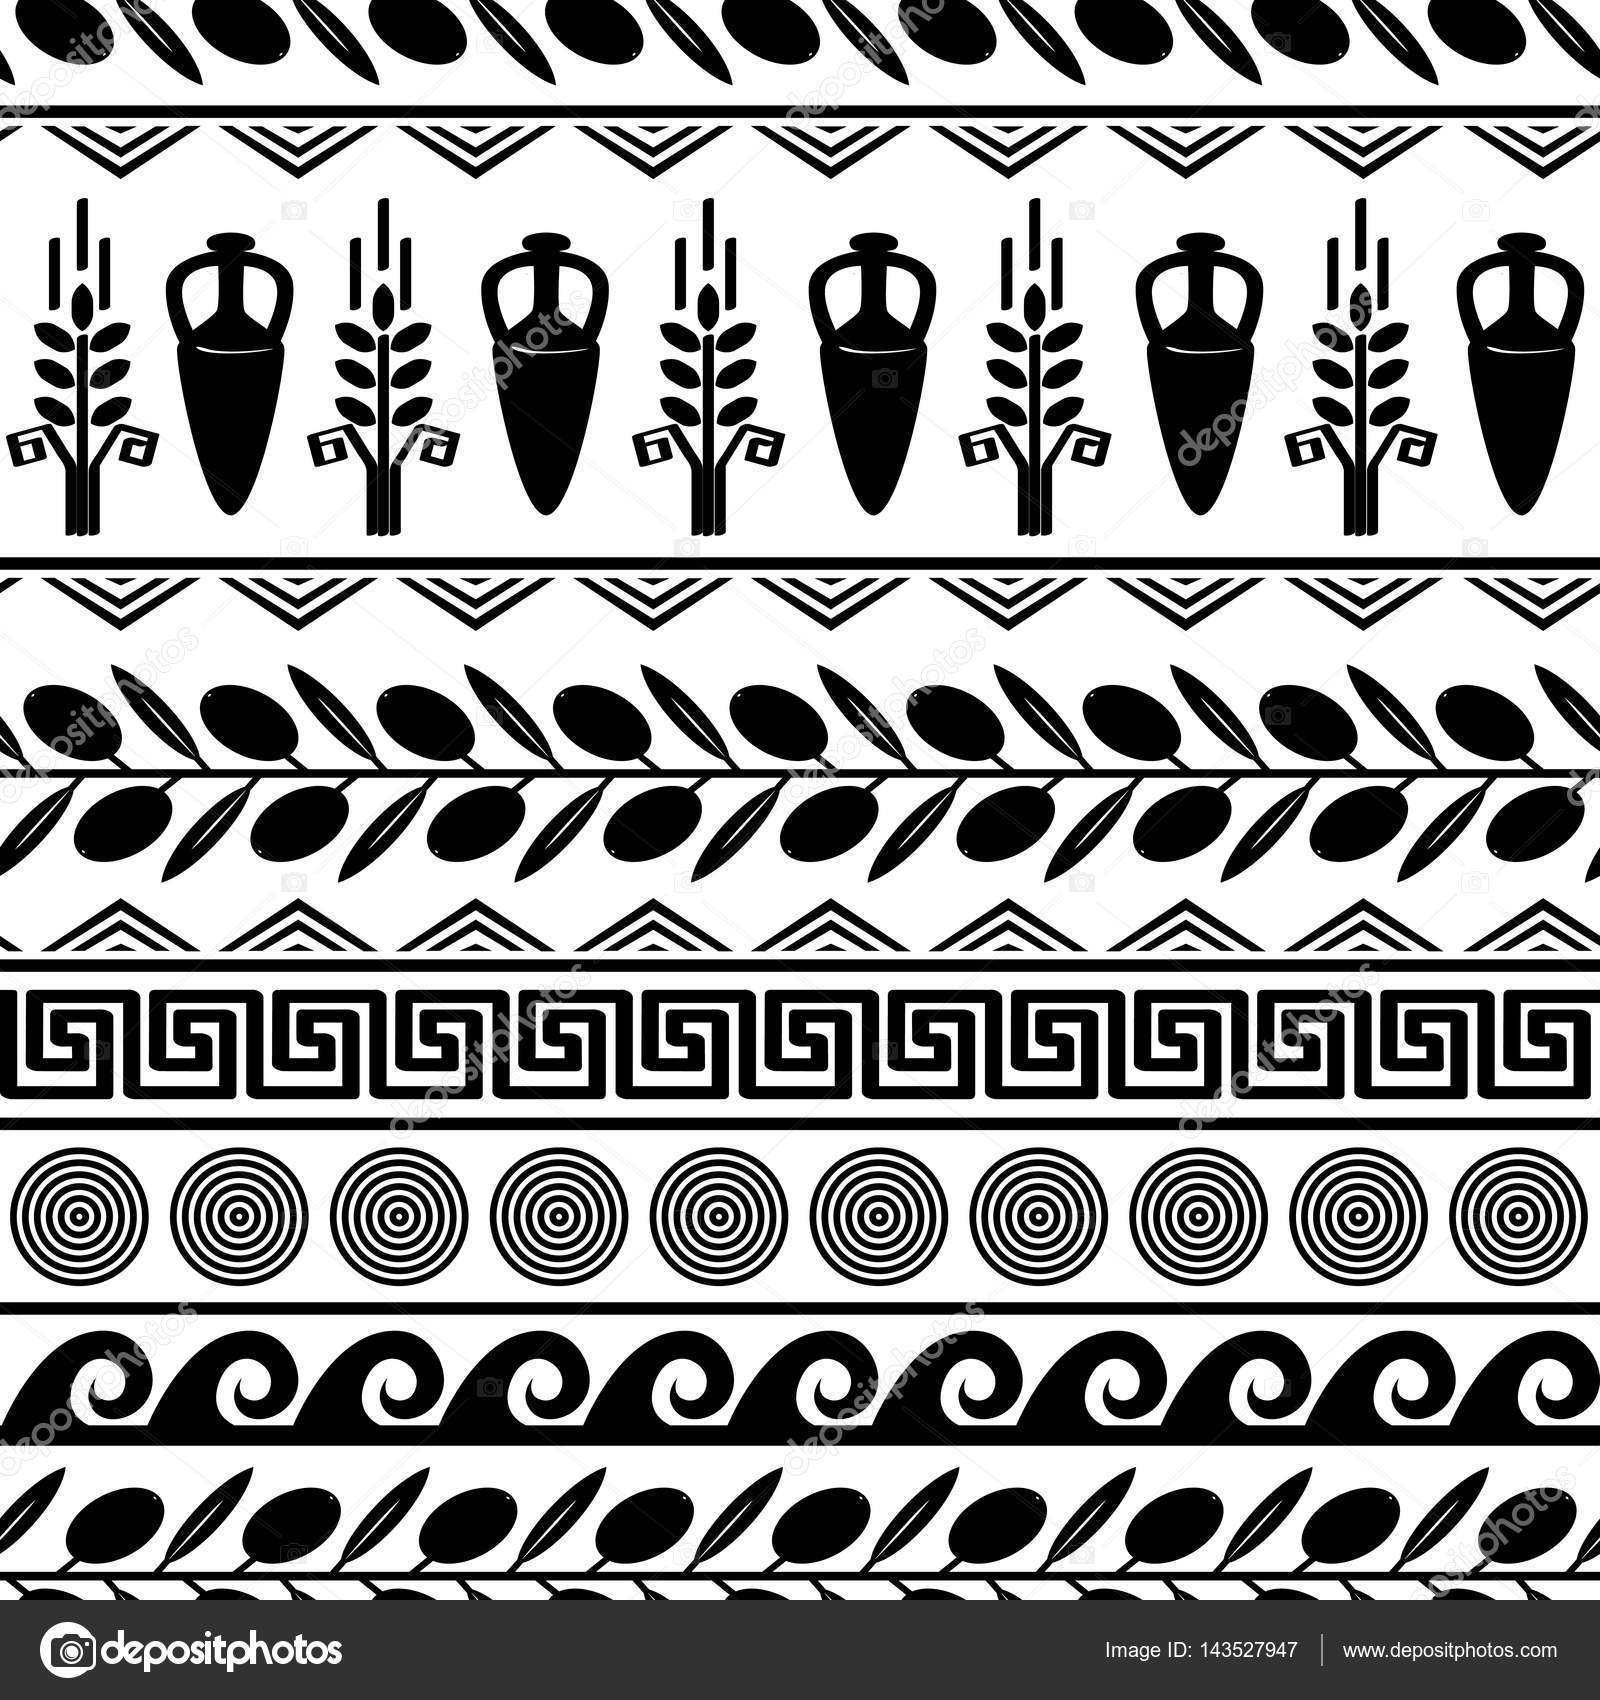 Seamless pattern with olives wheat amphora and greek symbols seamless pattern with olives wheat amphora and greek symbols white and black vector background vector by toltemara buycottarizona